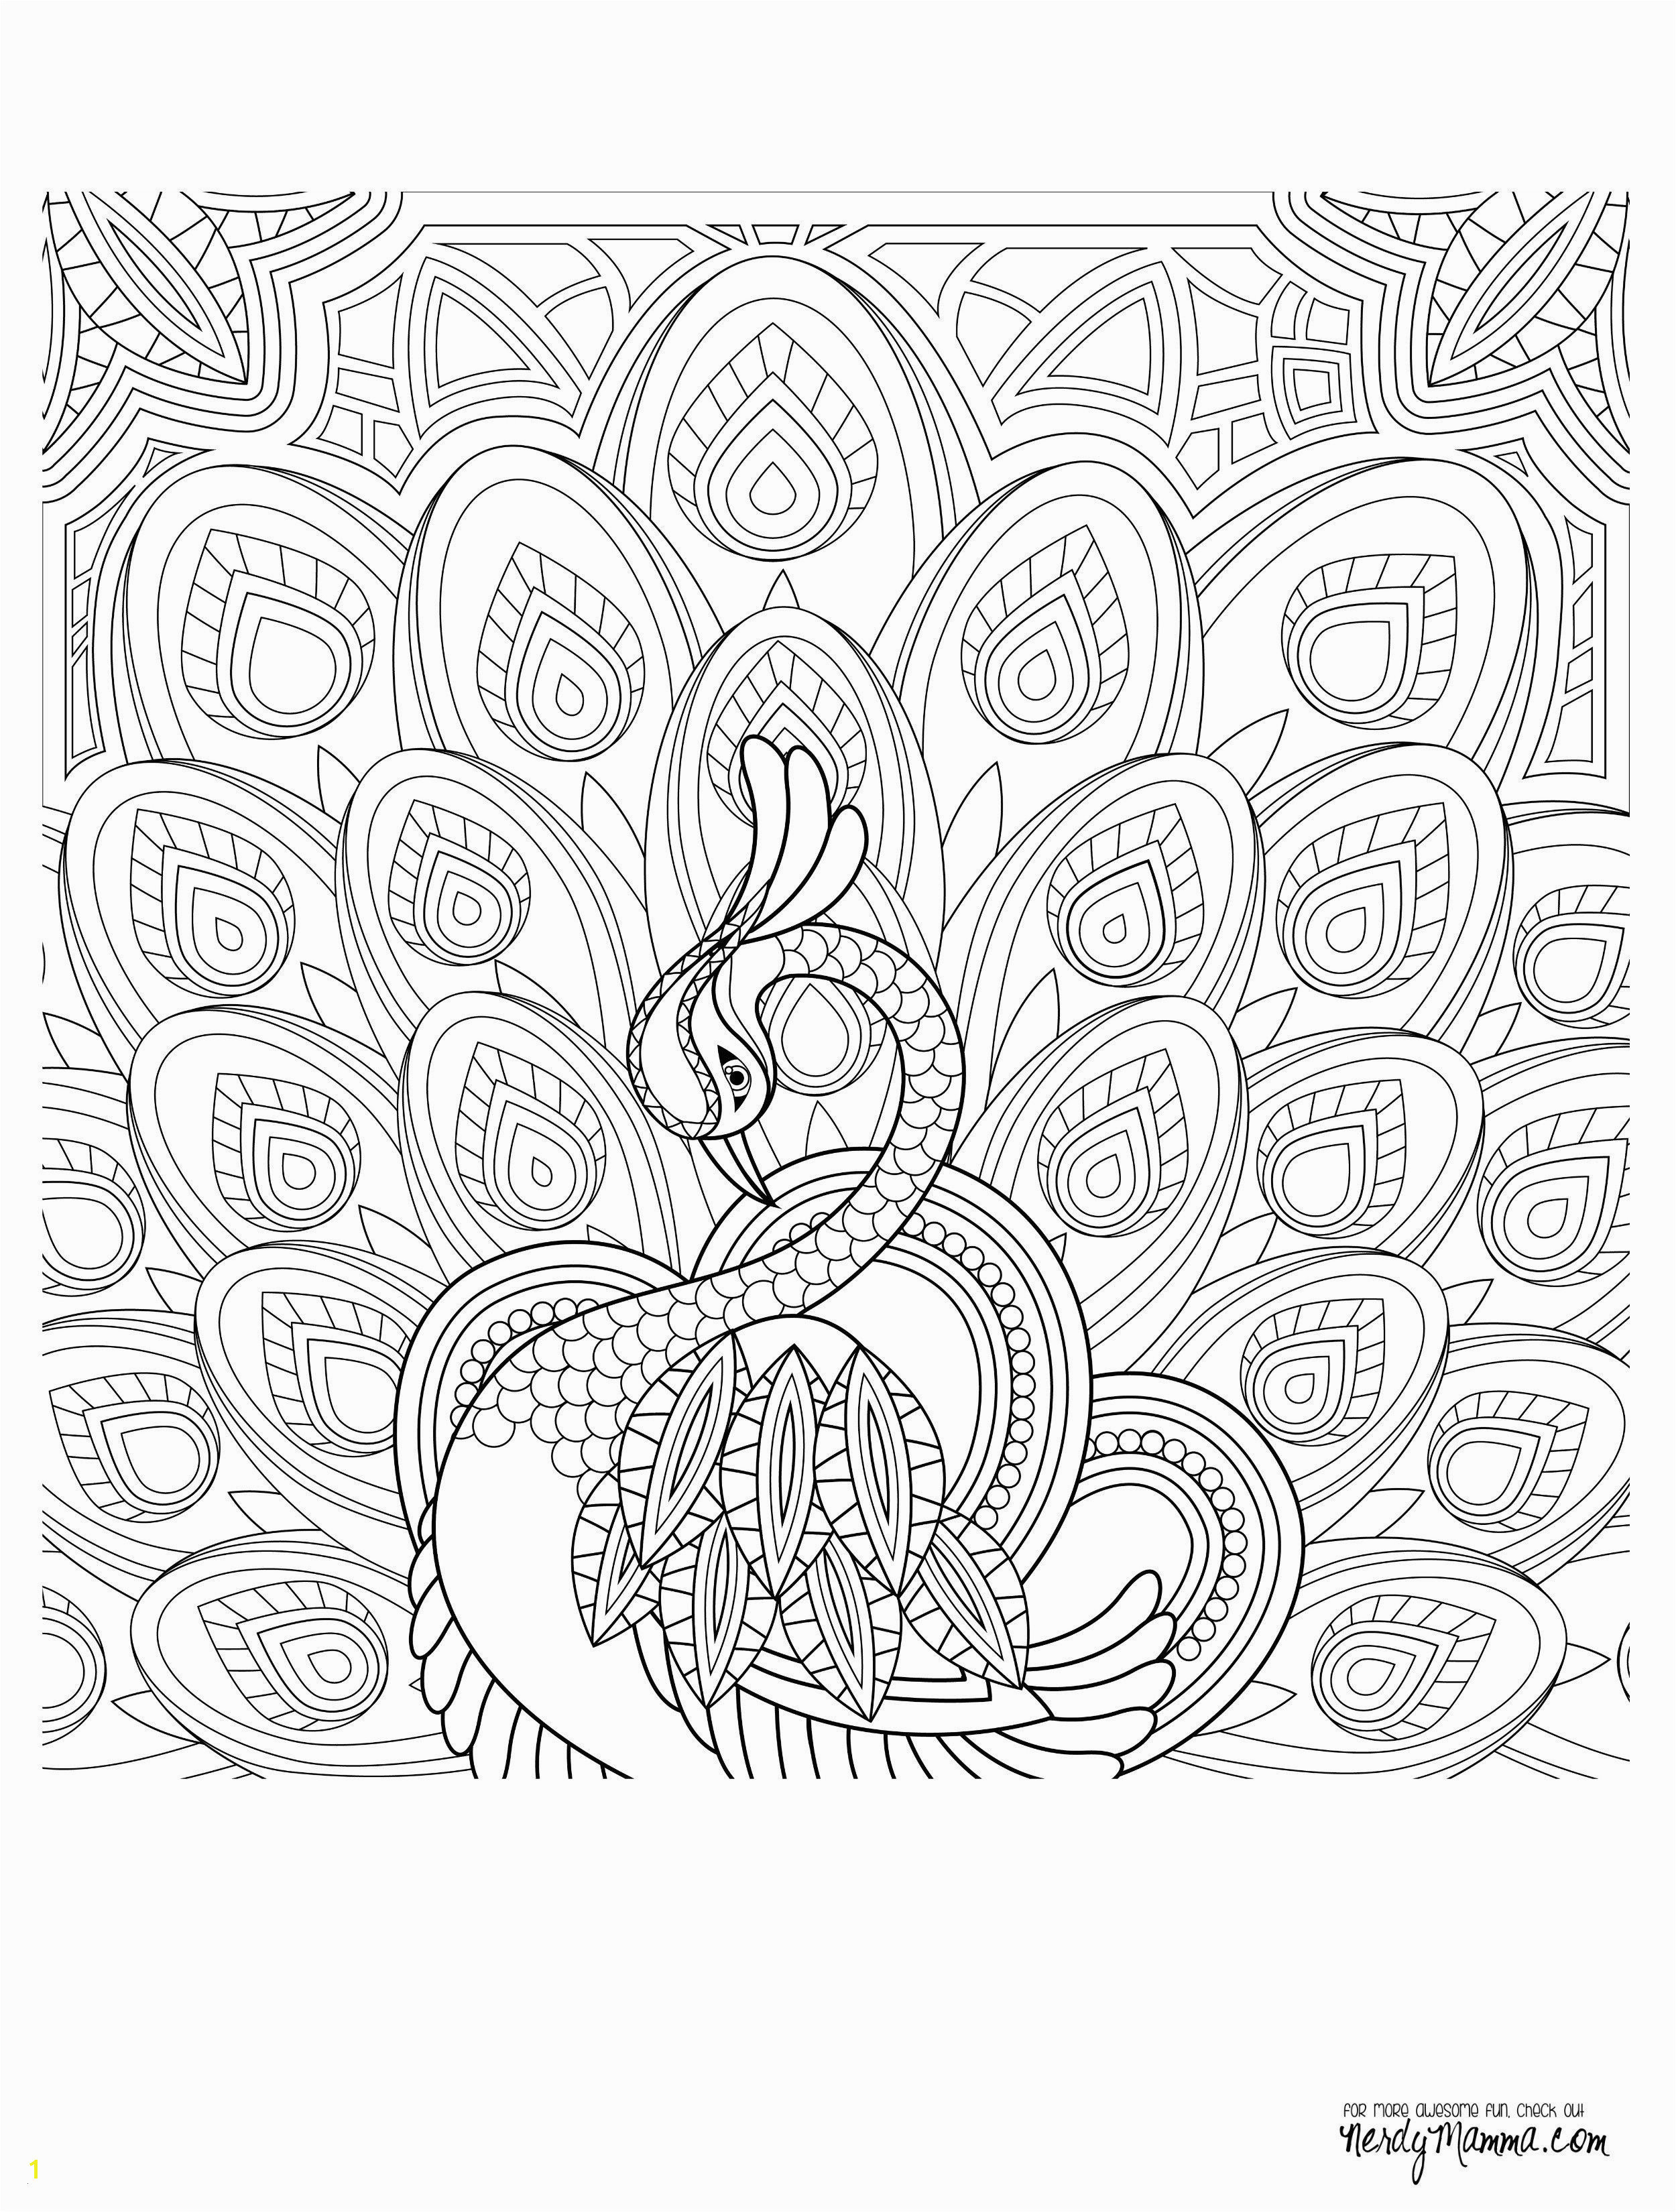 Sugar Skulls Coloring Pages Free New Adult Halloween Coloring Pages Luxury Sugar Skull Coloring Page